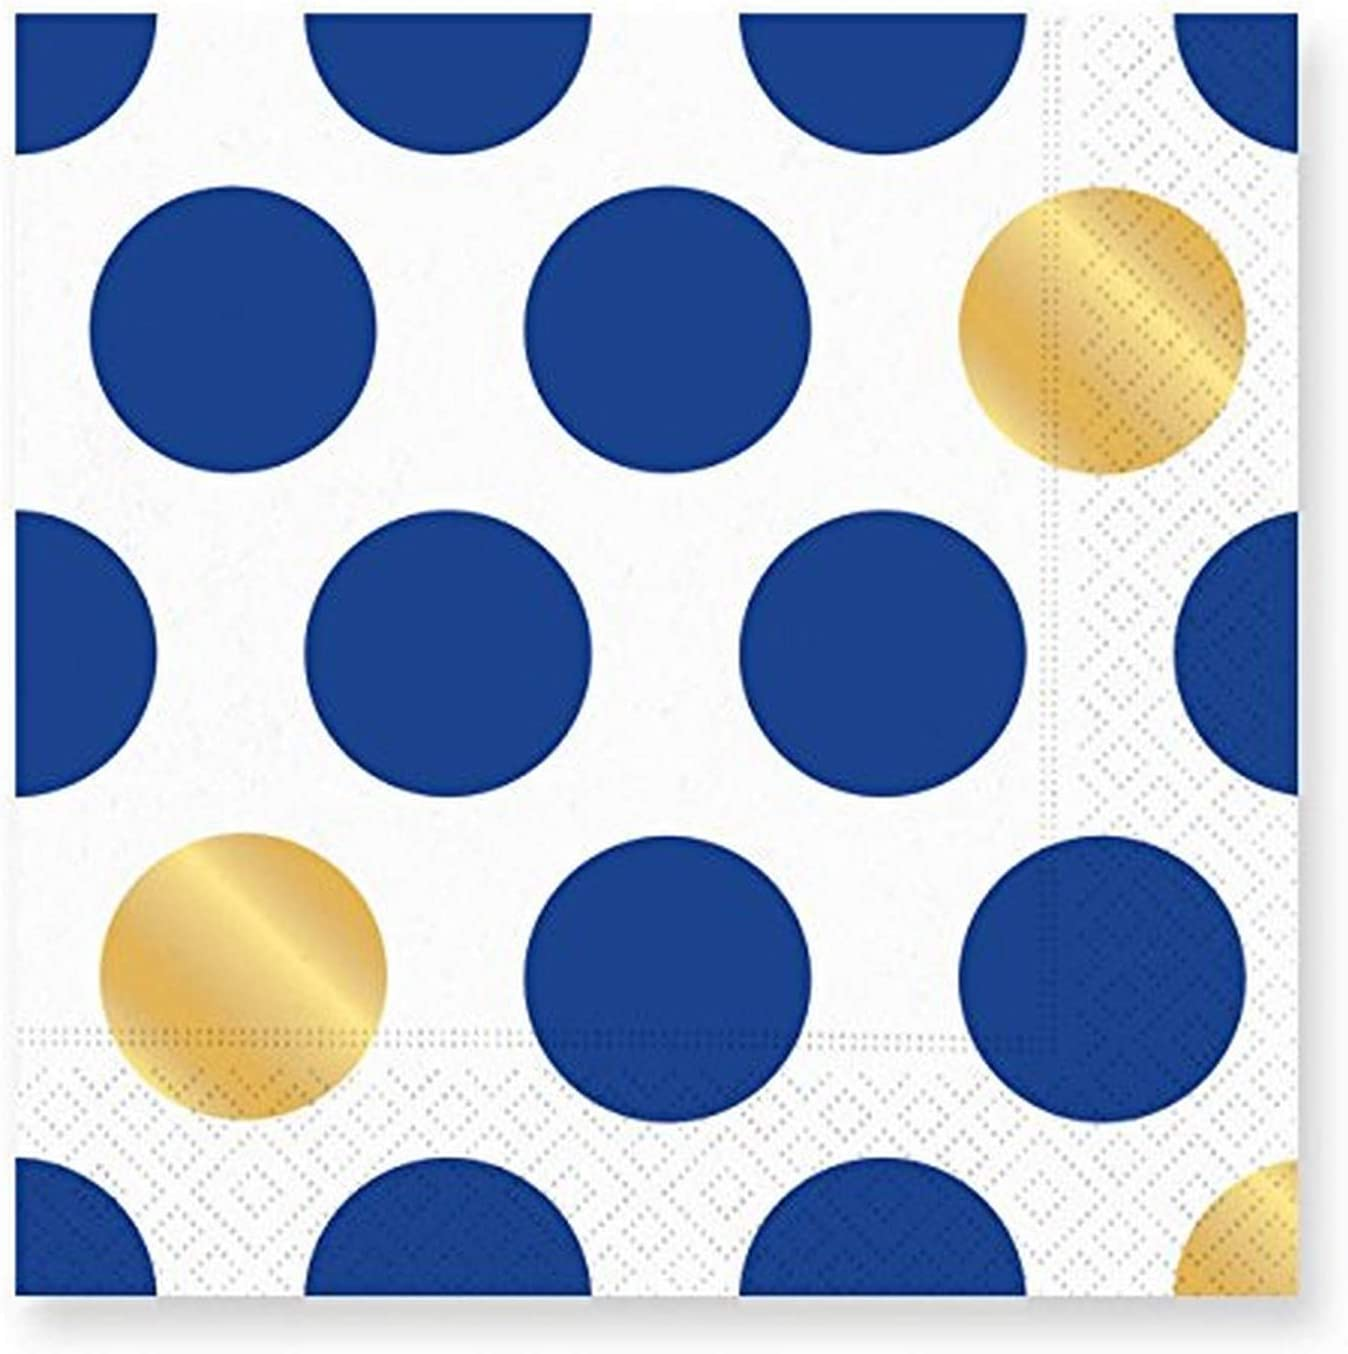 2 2-PLY TWO Packs of Napkins Dots /& Stripes Paper Cocktail Napkins 16ct